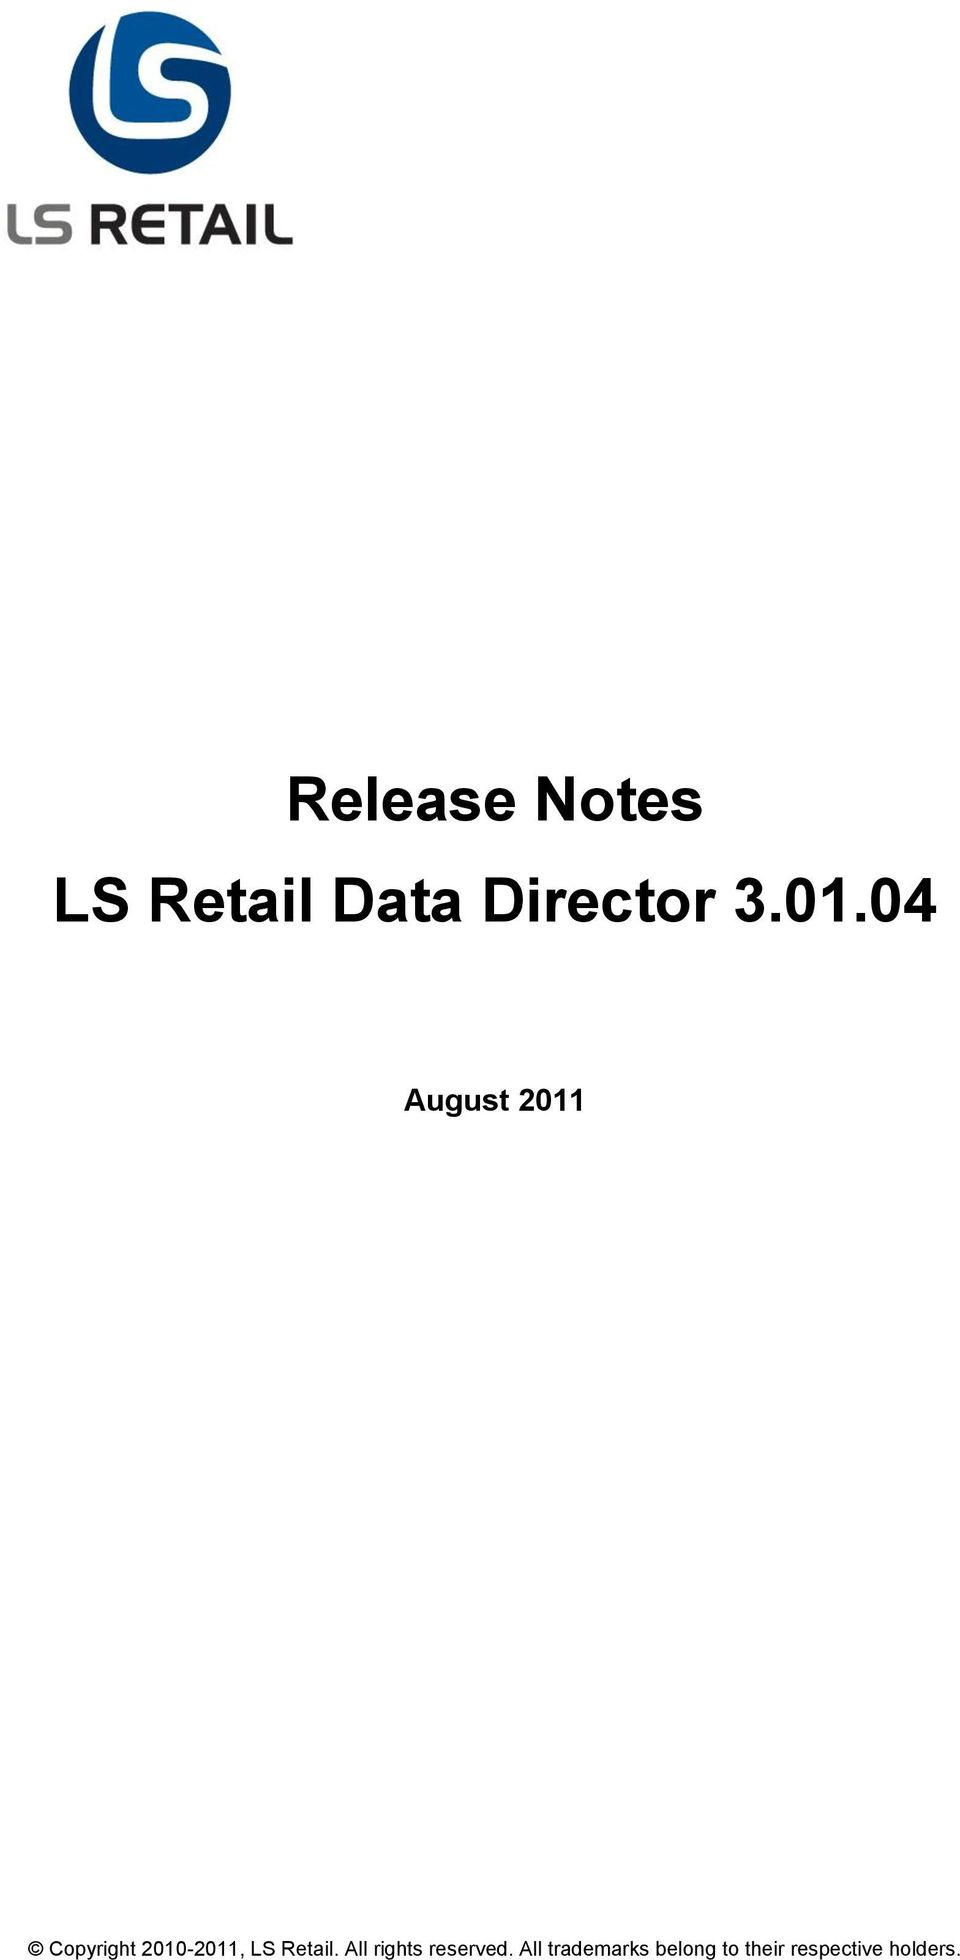 LS Retail. All rights reserved.